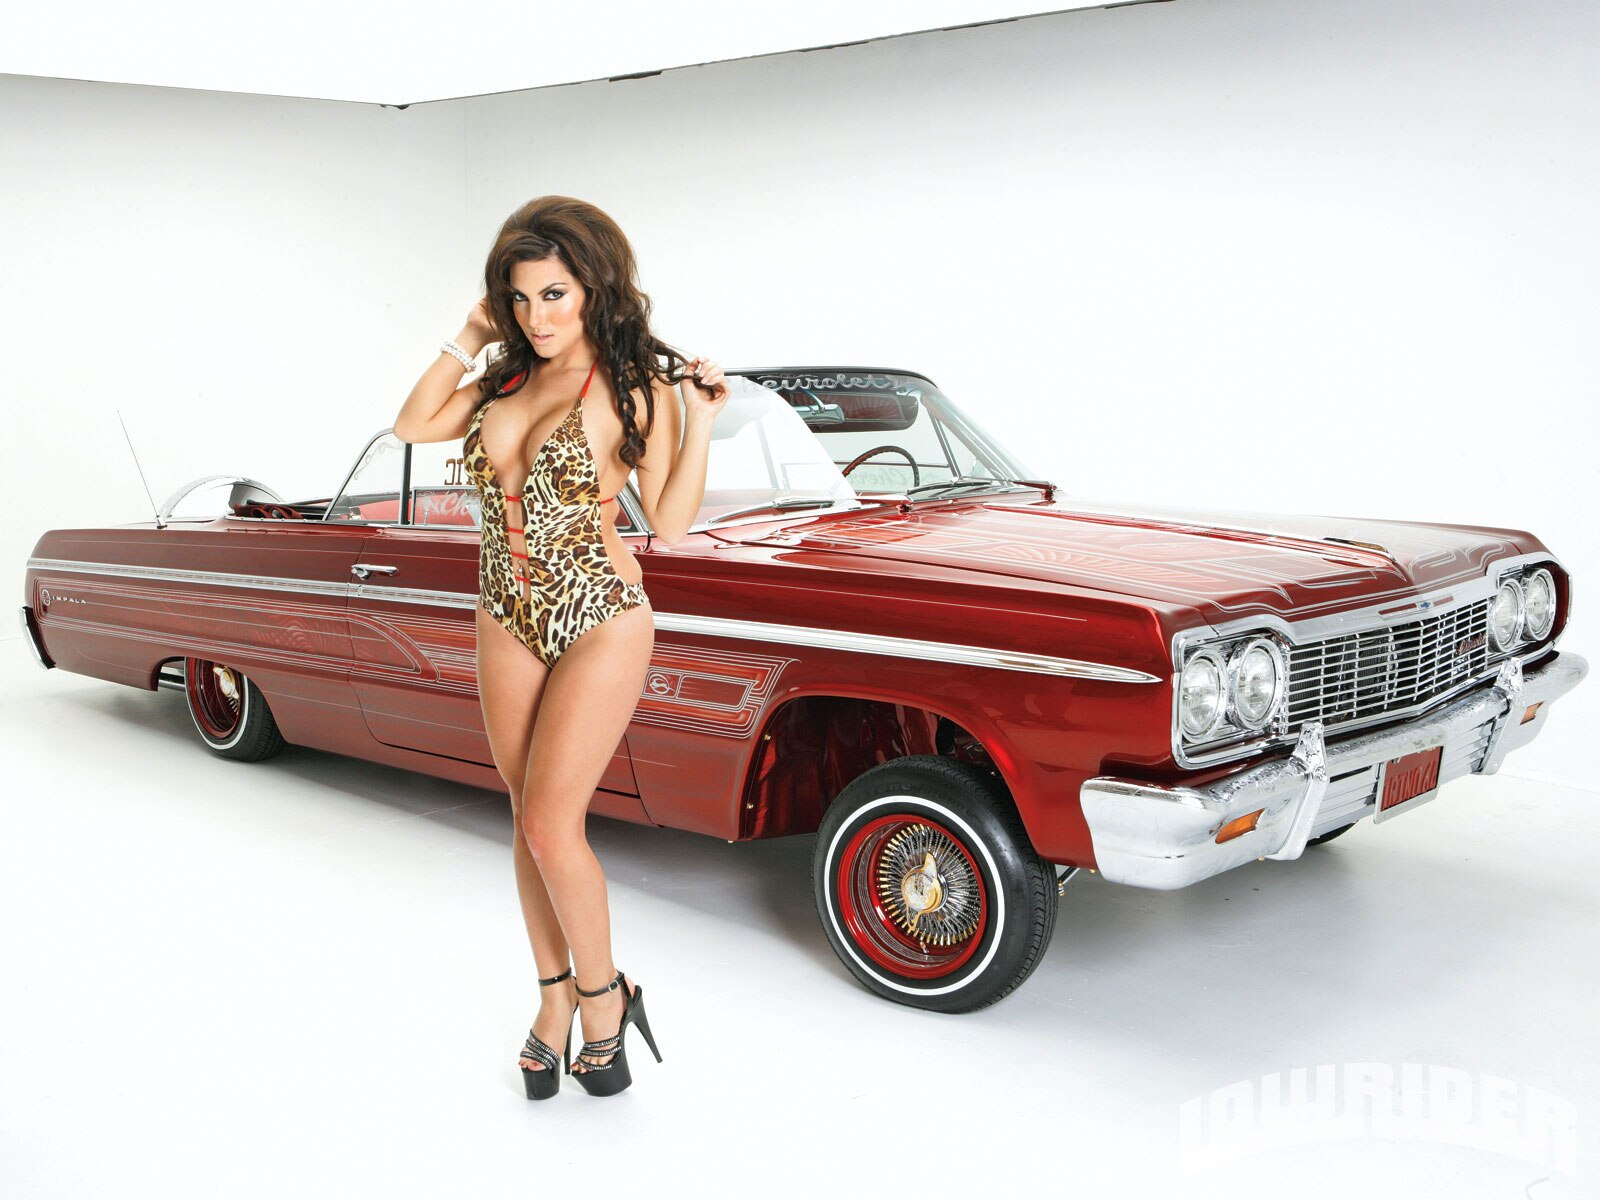 Mary Cherry Lowrider Girls Model Lowrider Girls Magazine